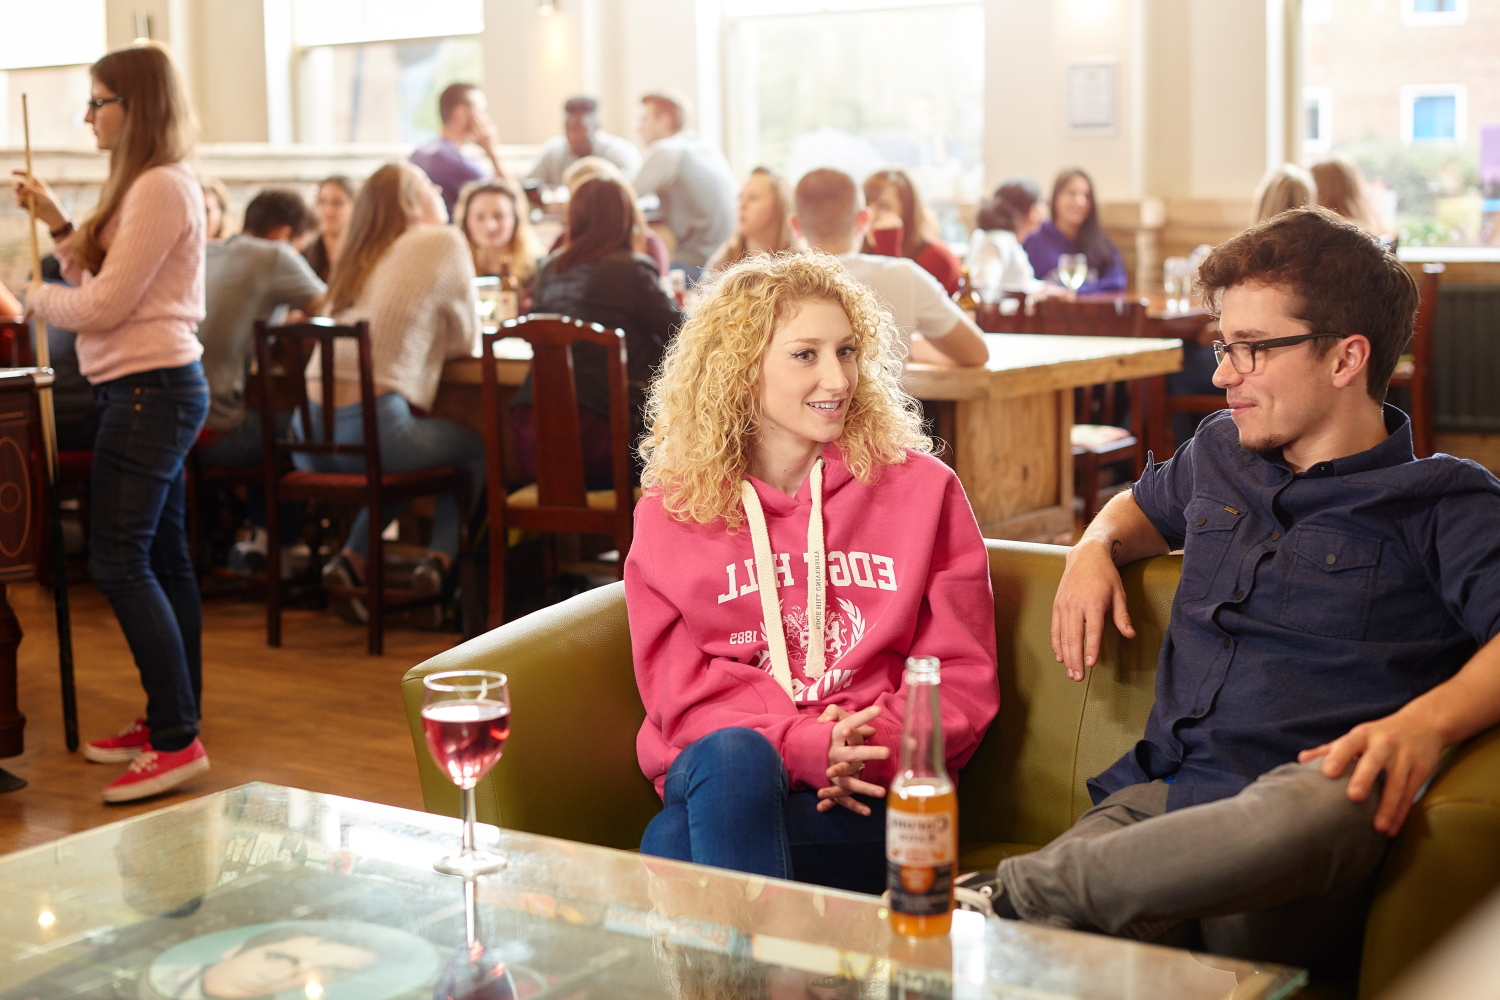 Two students chat over drinks while relaxing on a sofa in the SU Bar.